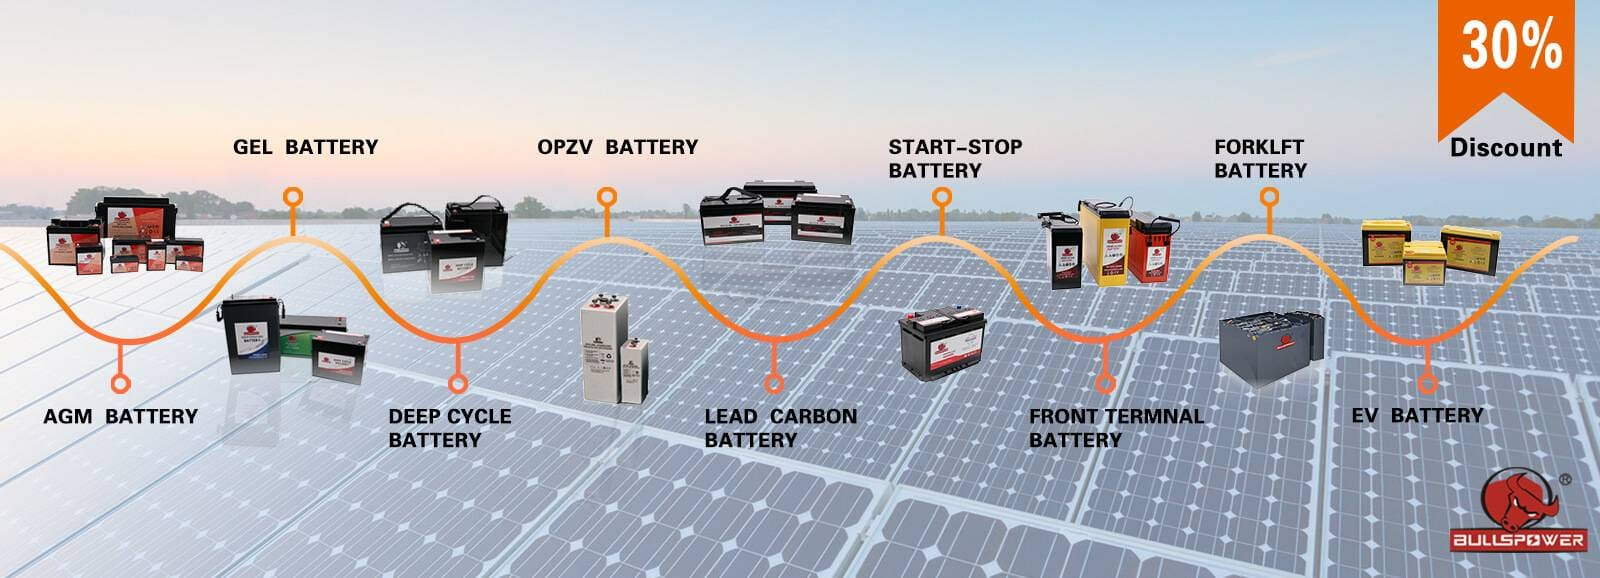 world's leading battery manufacturer